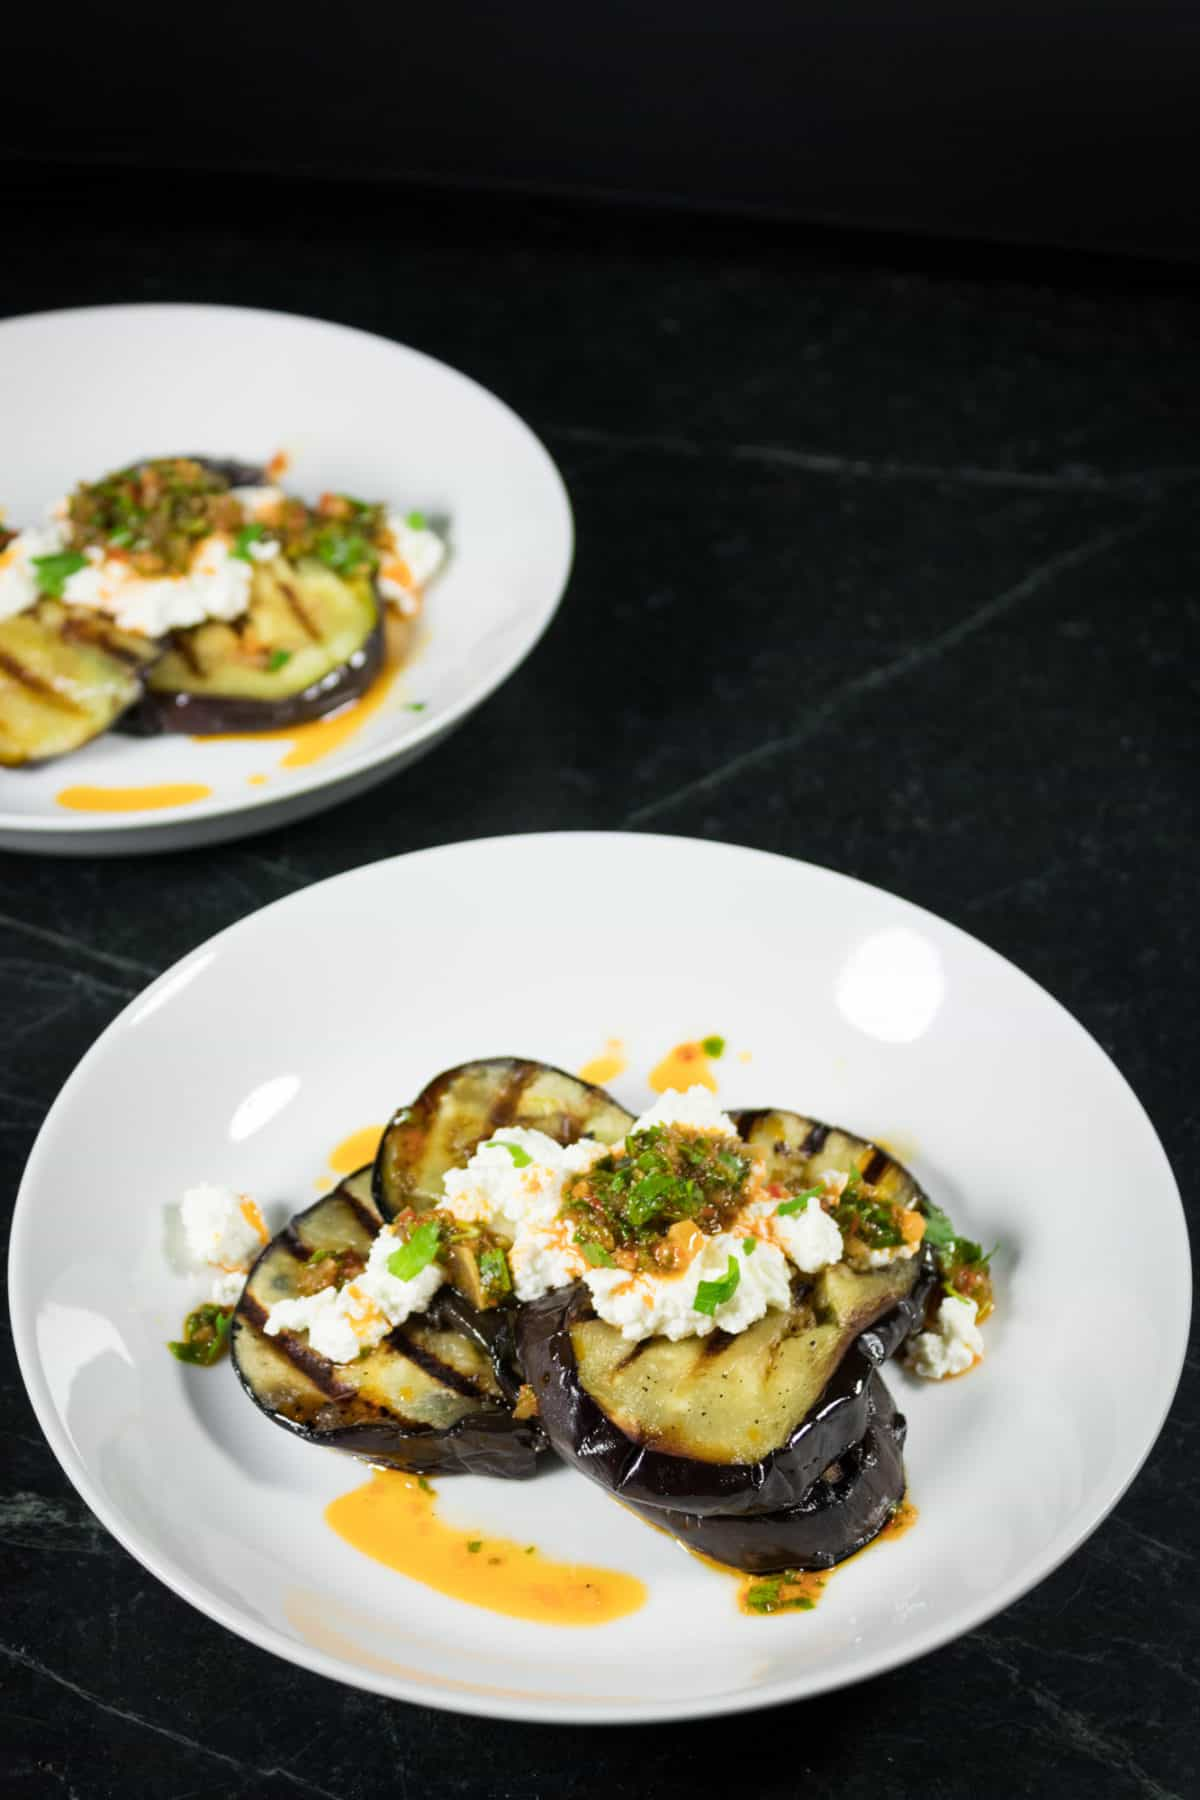 grilled eggplant with moroccan gremolata